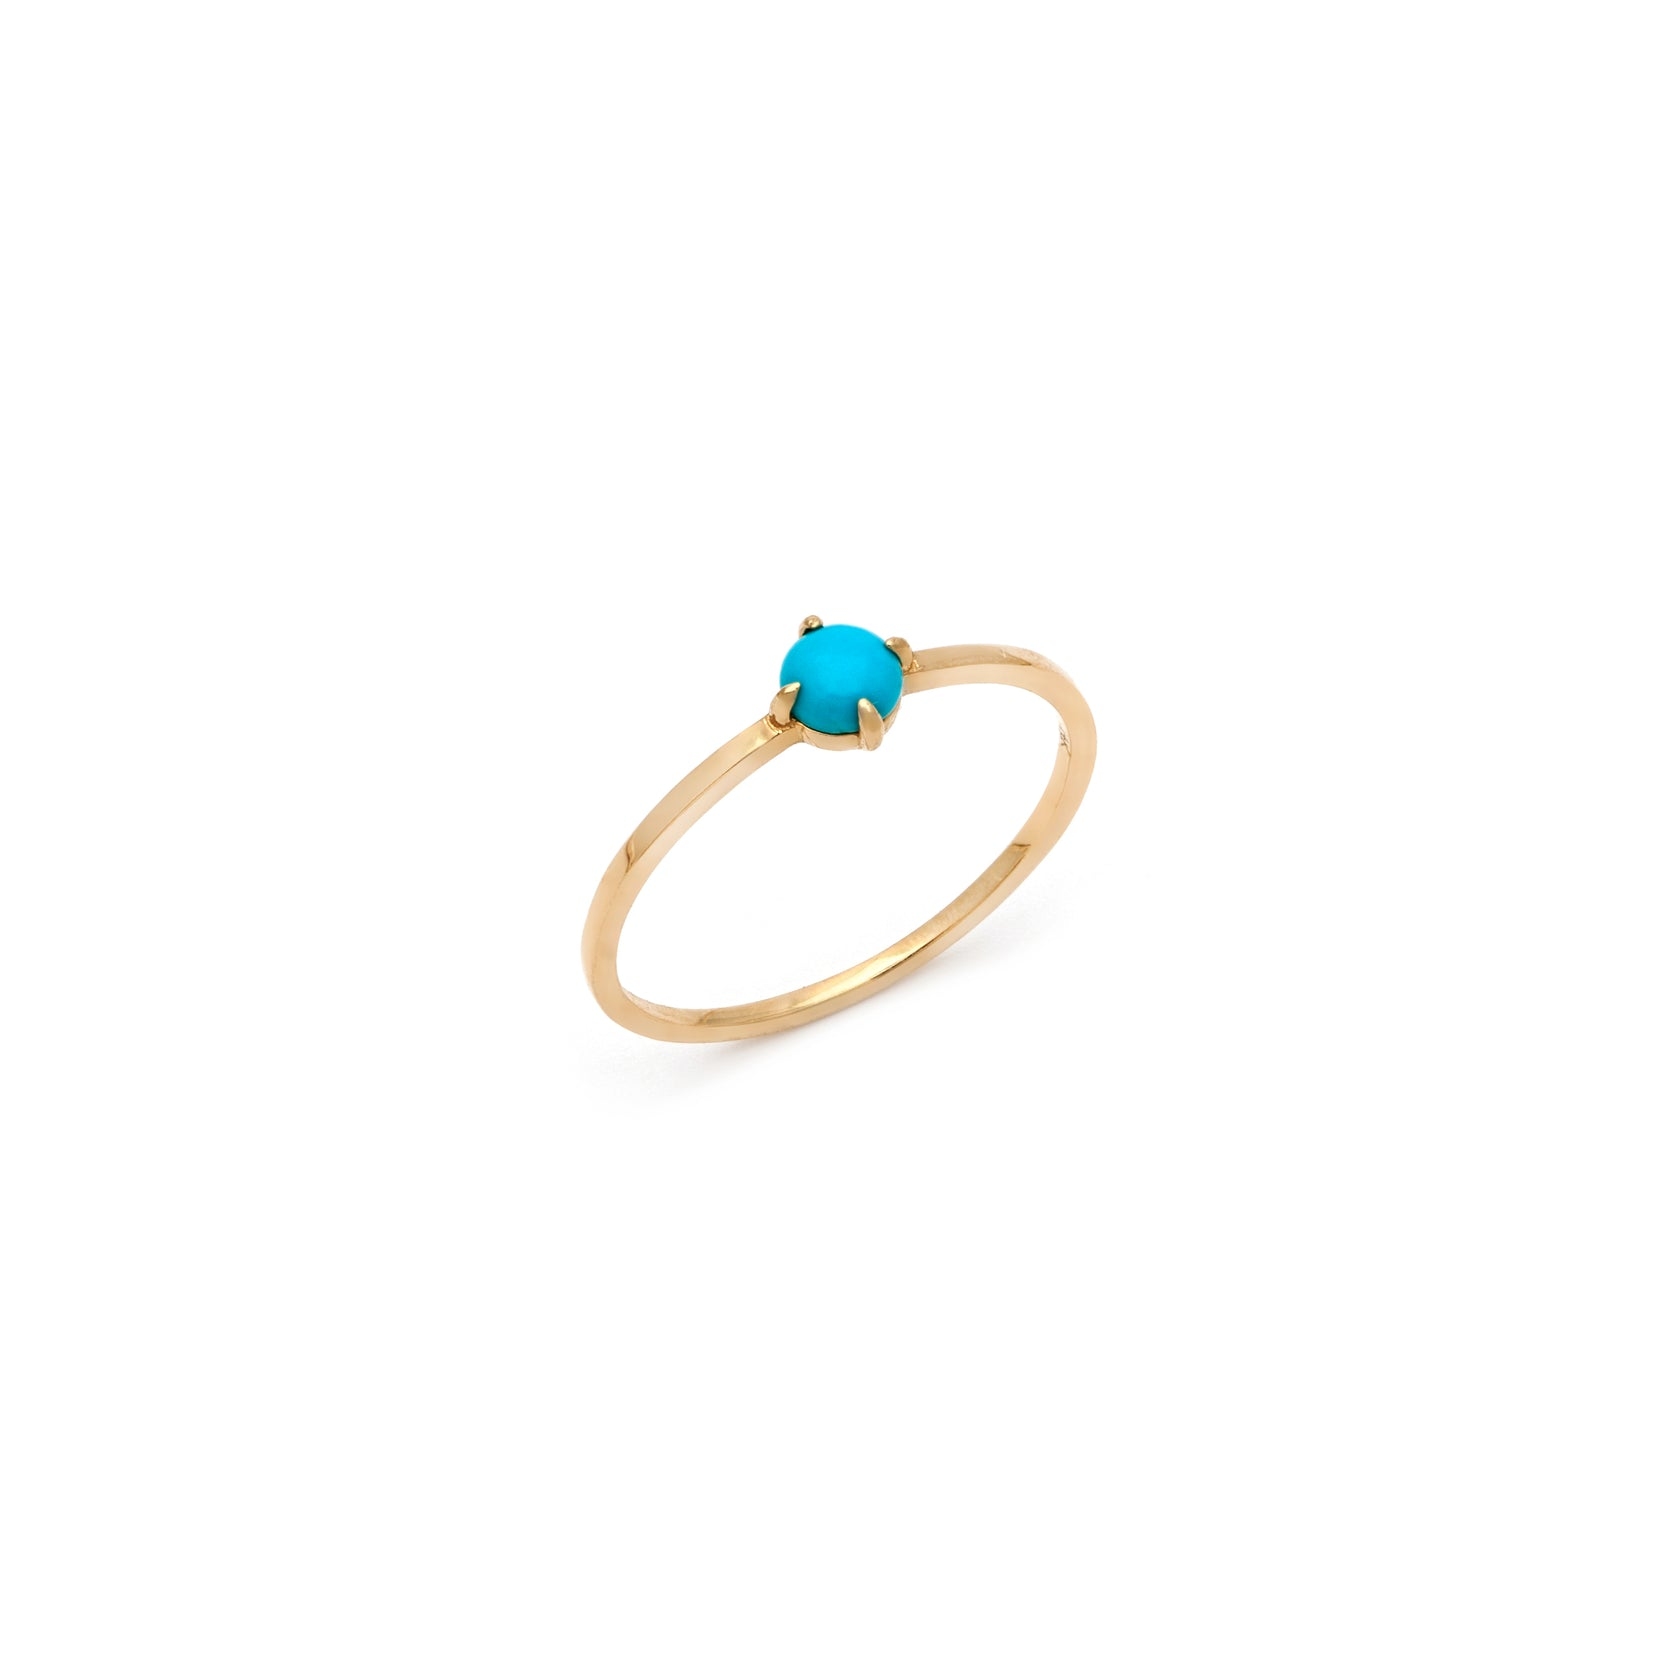 Coveted Turquoise Ring - 14k Solid Gold